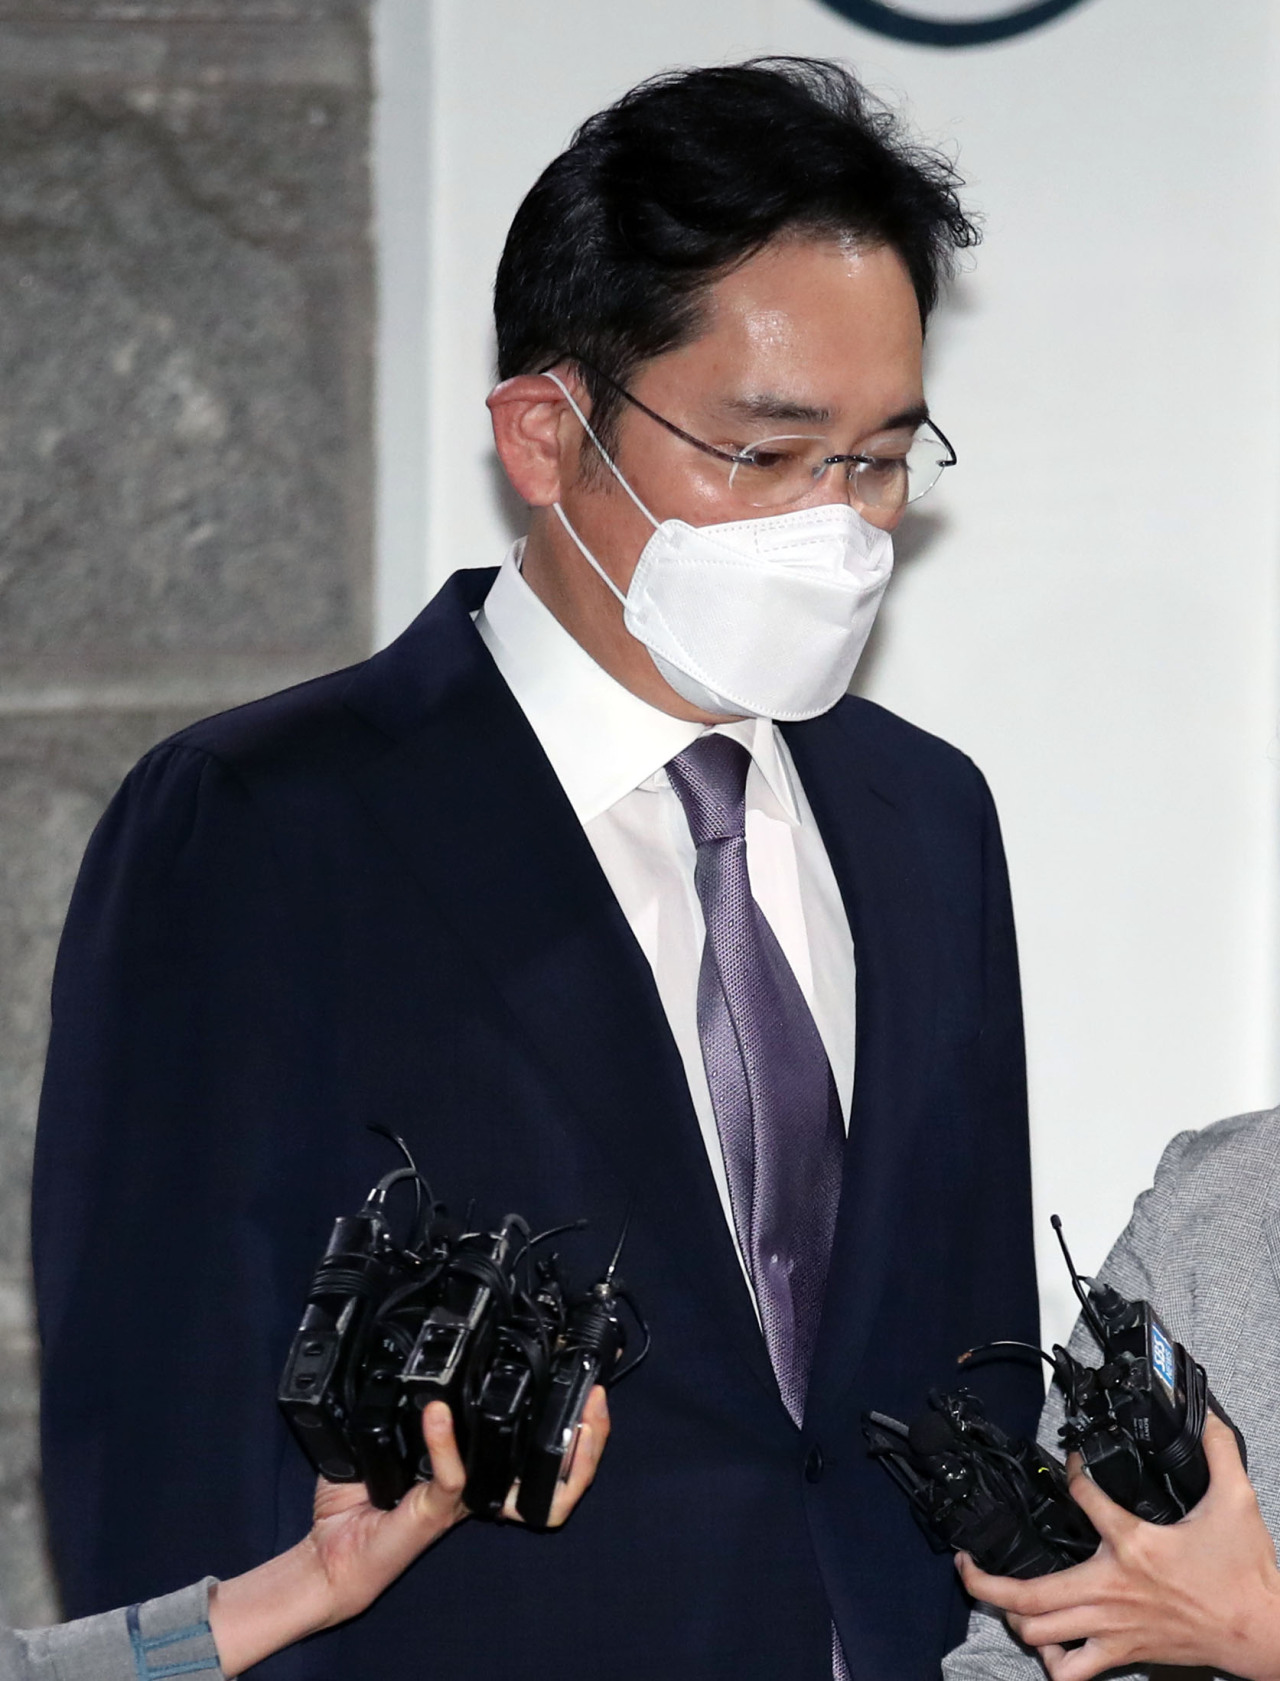 Lee Jae-yong leaves the Seoul detention center on Tuesday. (Yonhap)